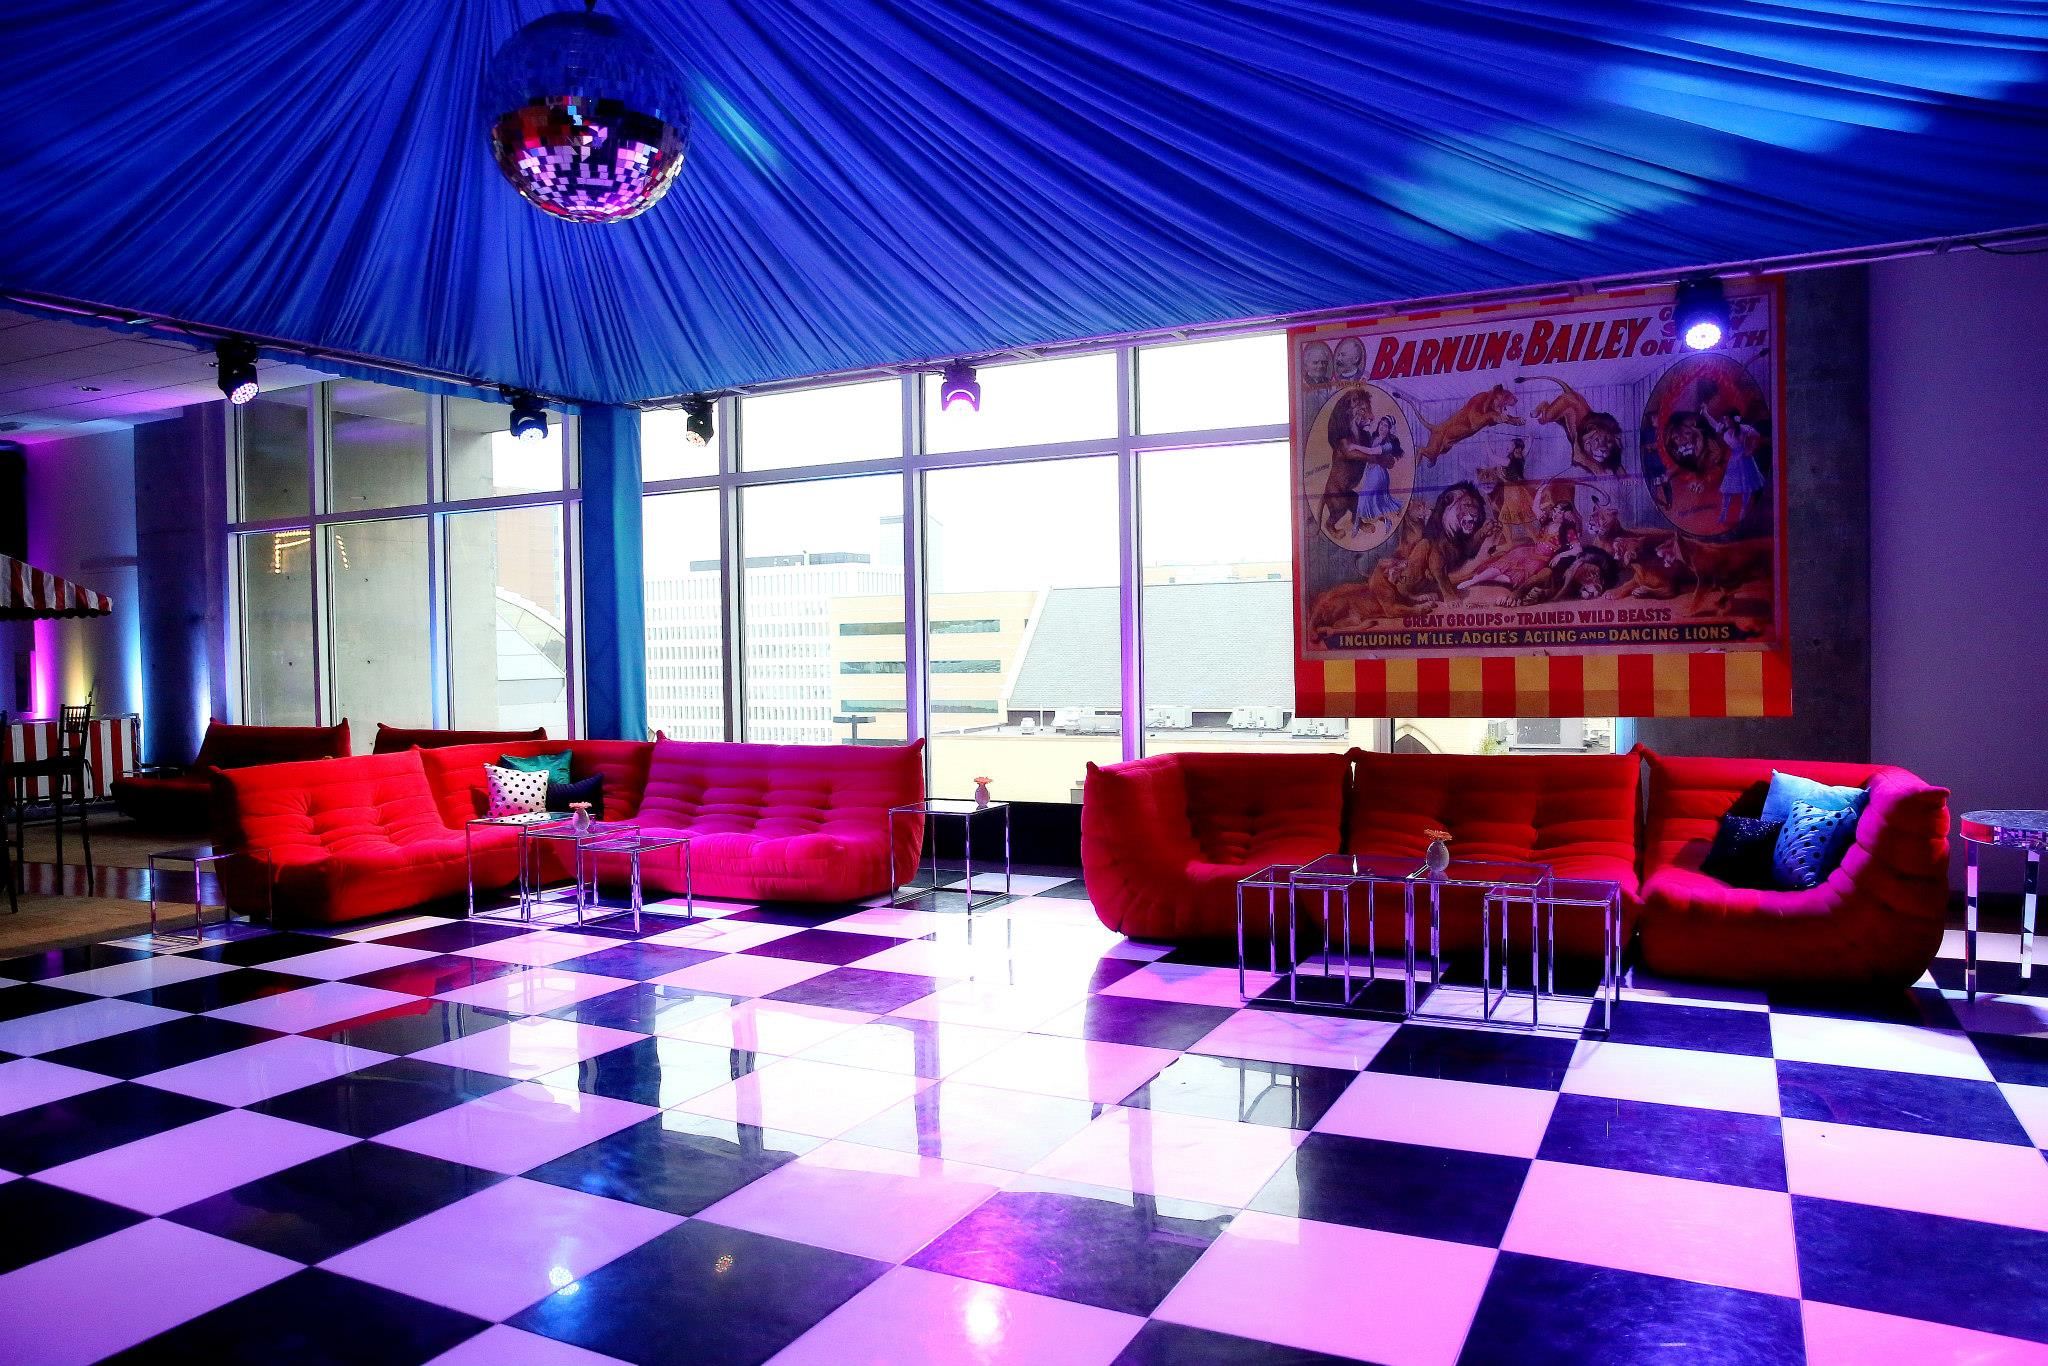 VAI Van Andel Institute Event with Checkered Floors